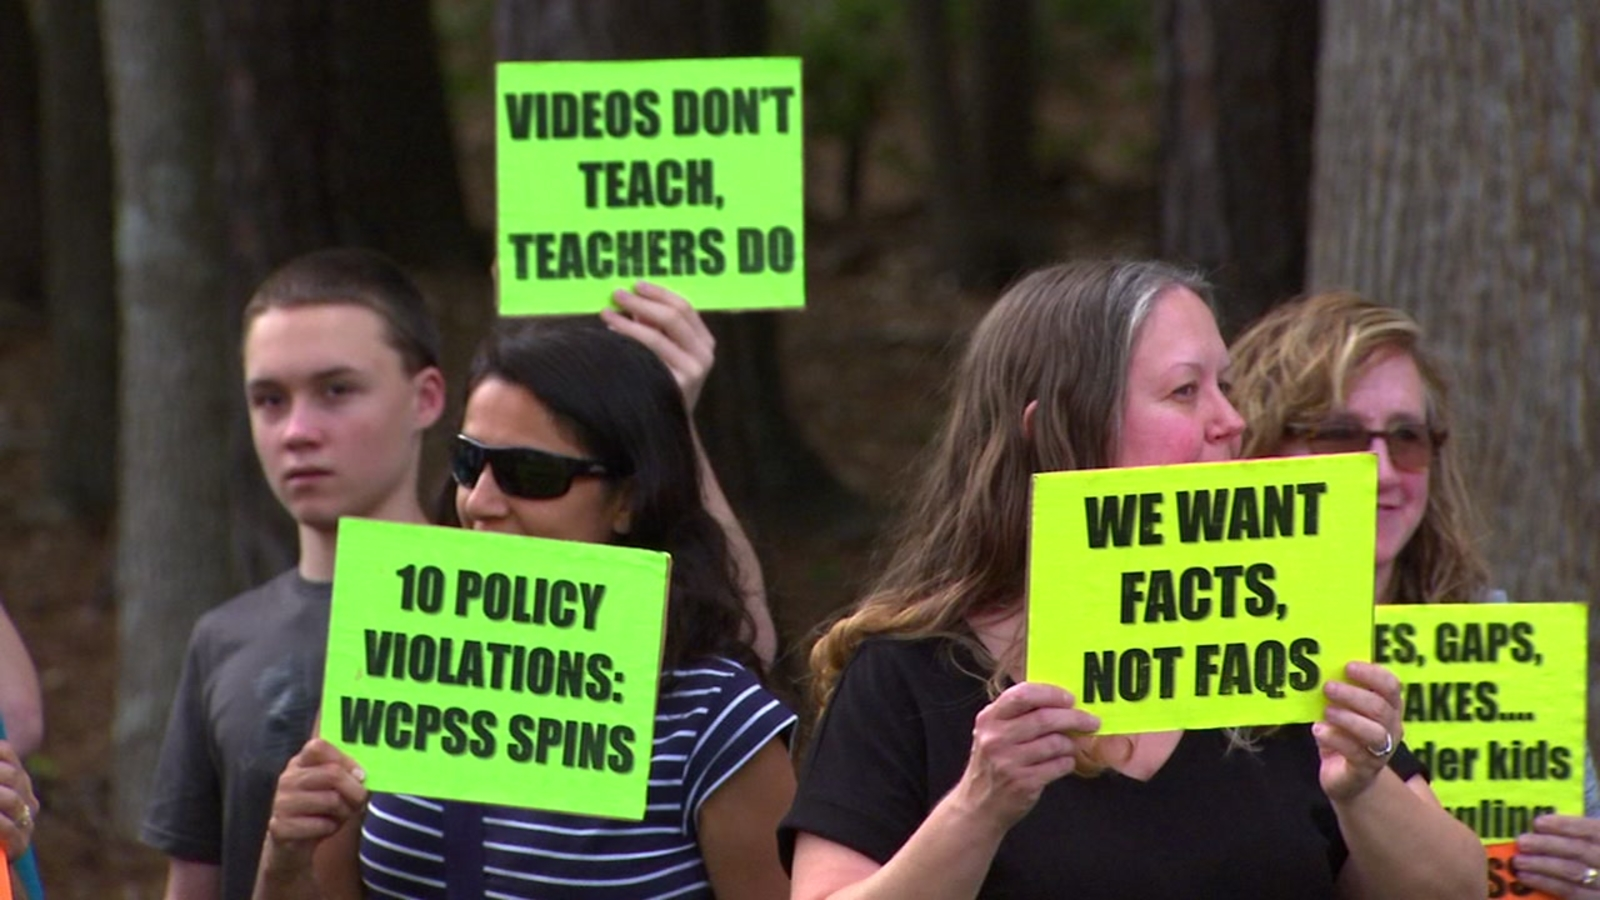 WCPSS review committee backs controversial math curriculum amid protests